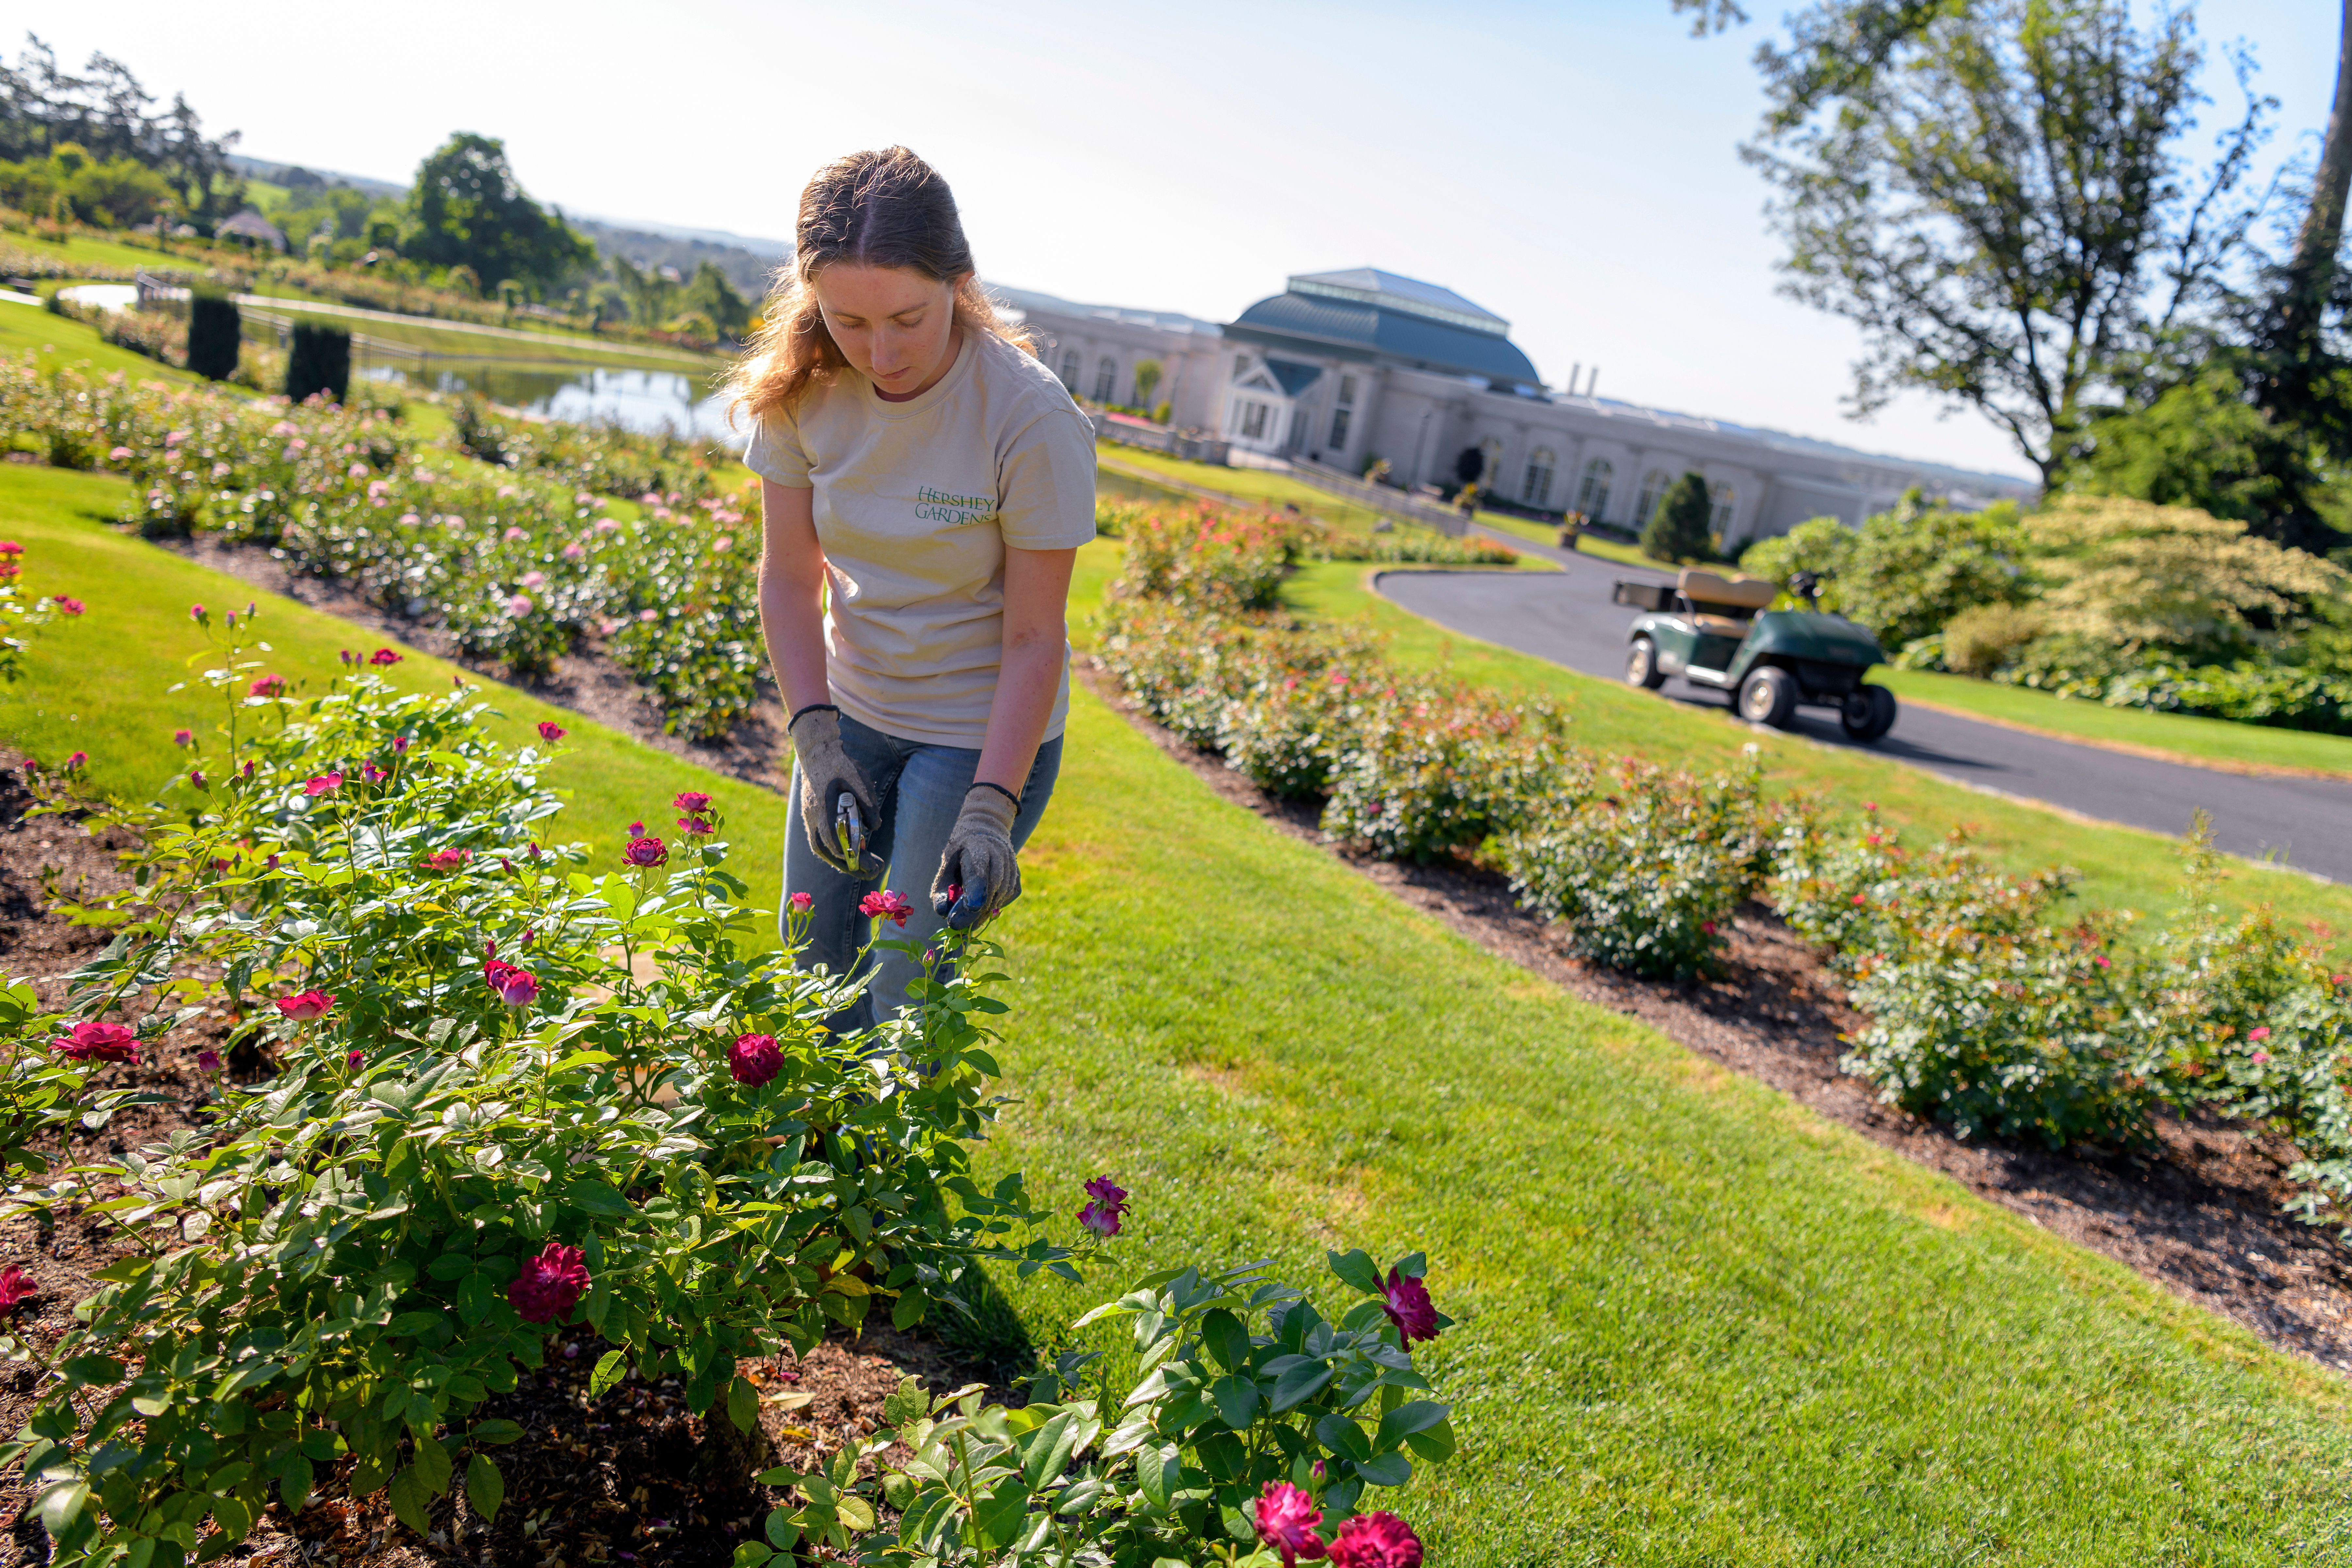 The Horticulture Industry S Age Problem Is Bigger Than You Think The Washington Post